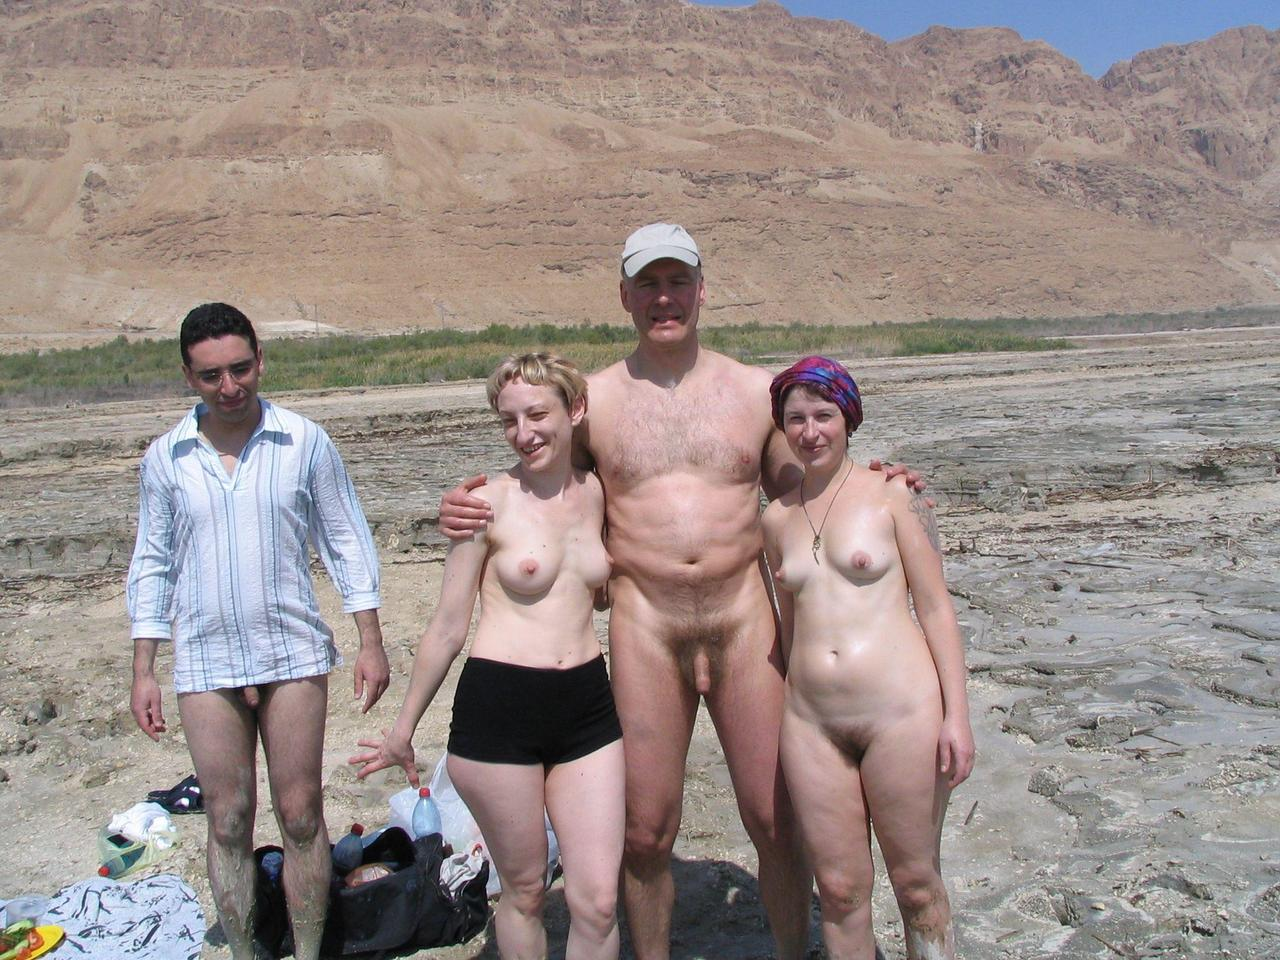 Hikers nude girl groups